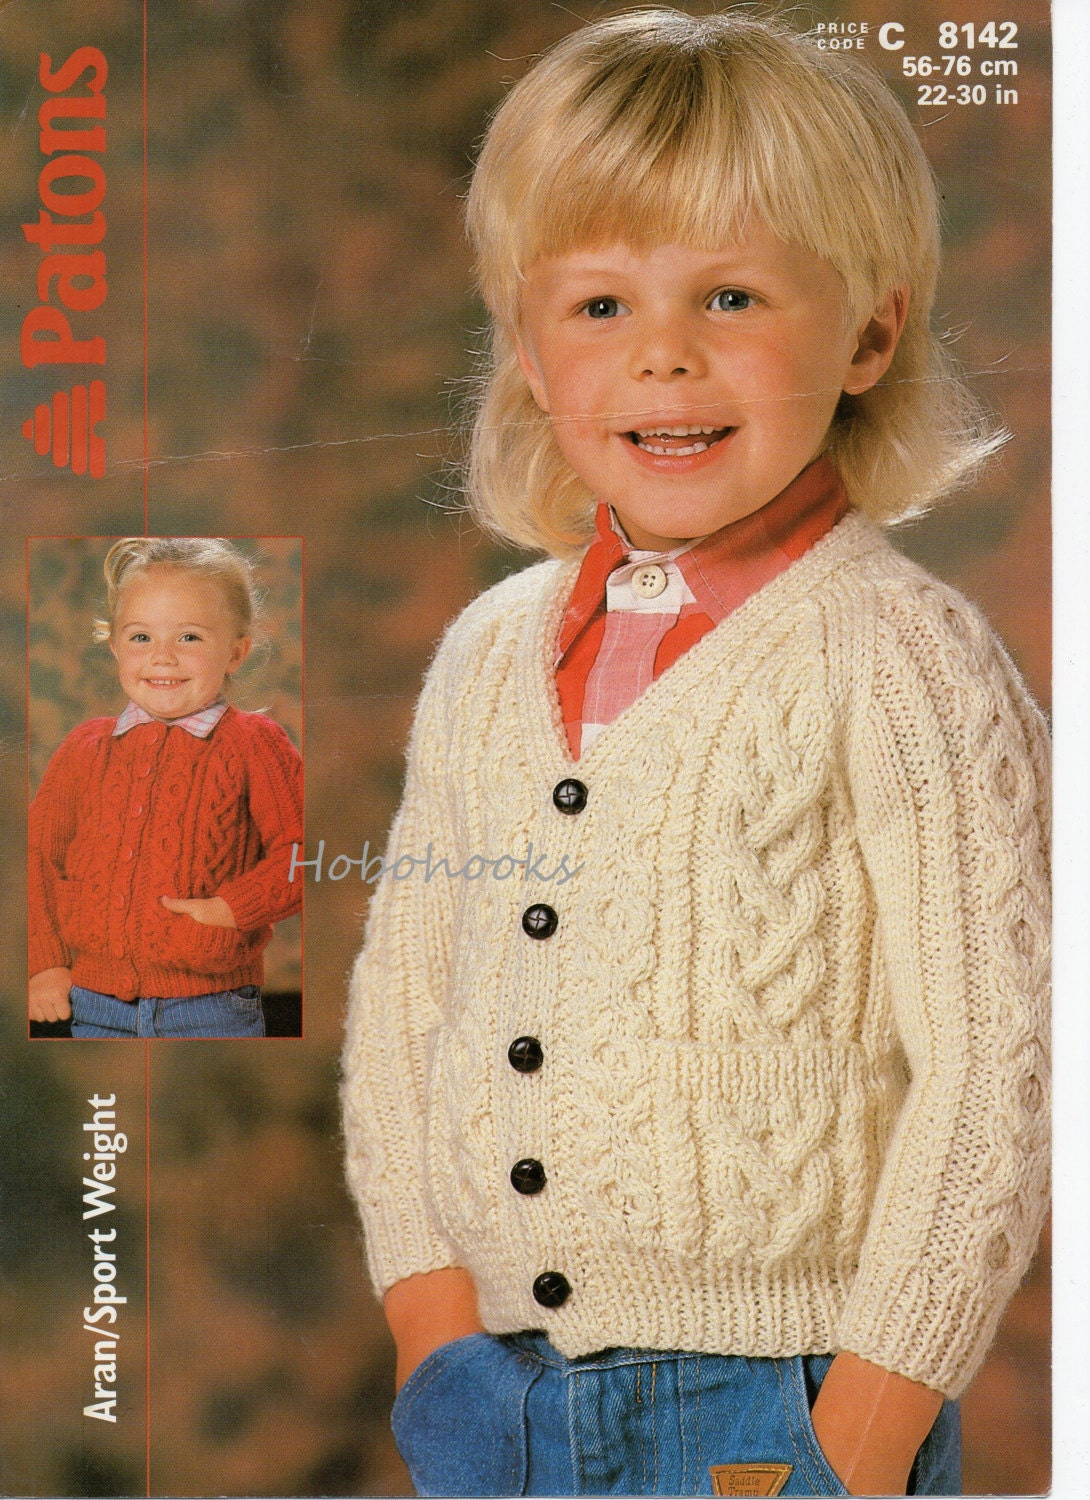 Children s Cardigan Knitting Patterns : childrens aran cardigan knitting pattern 22-30 inches aran